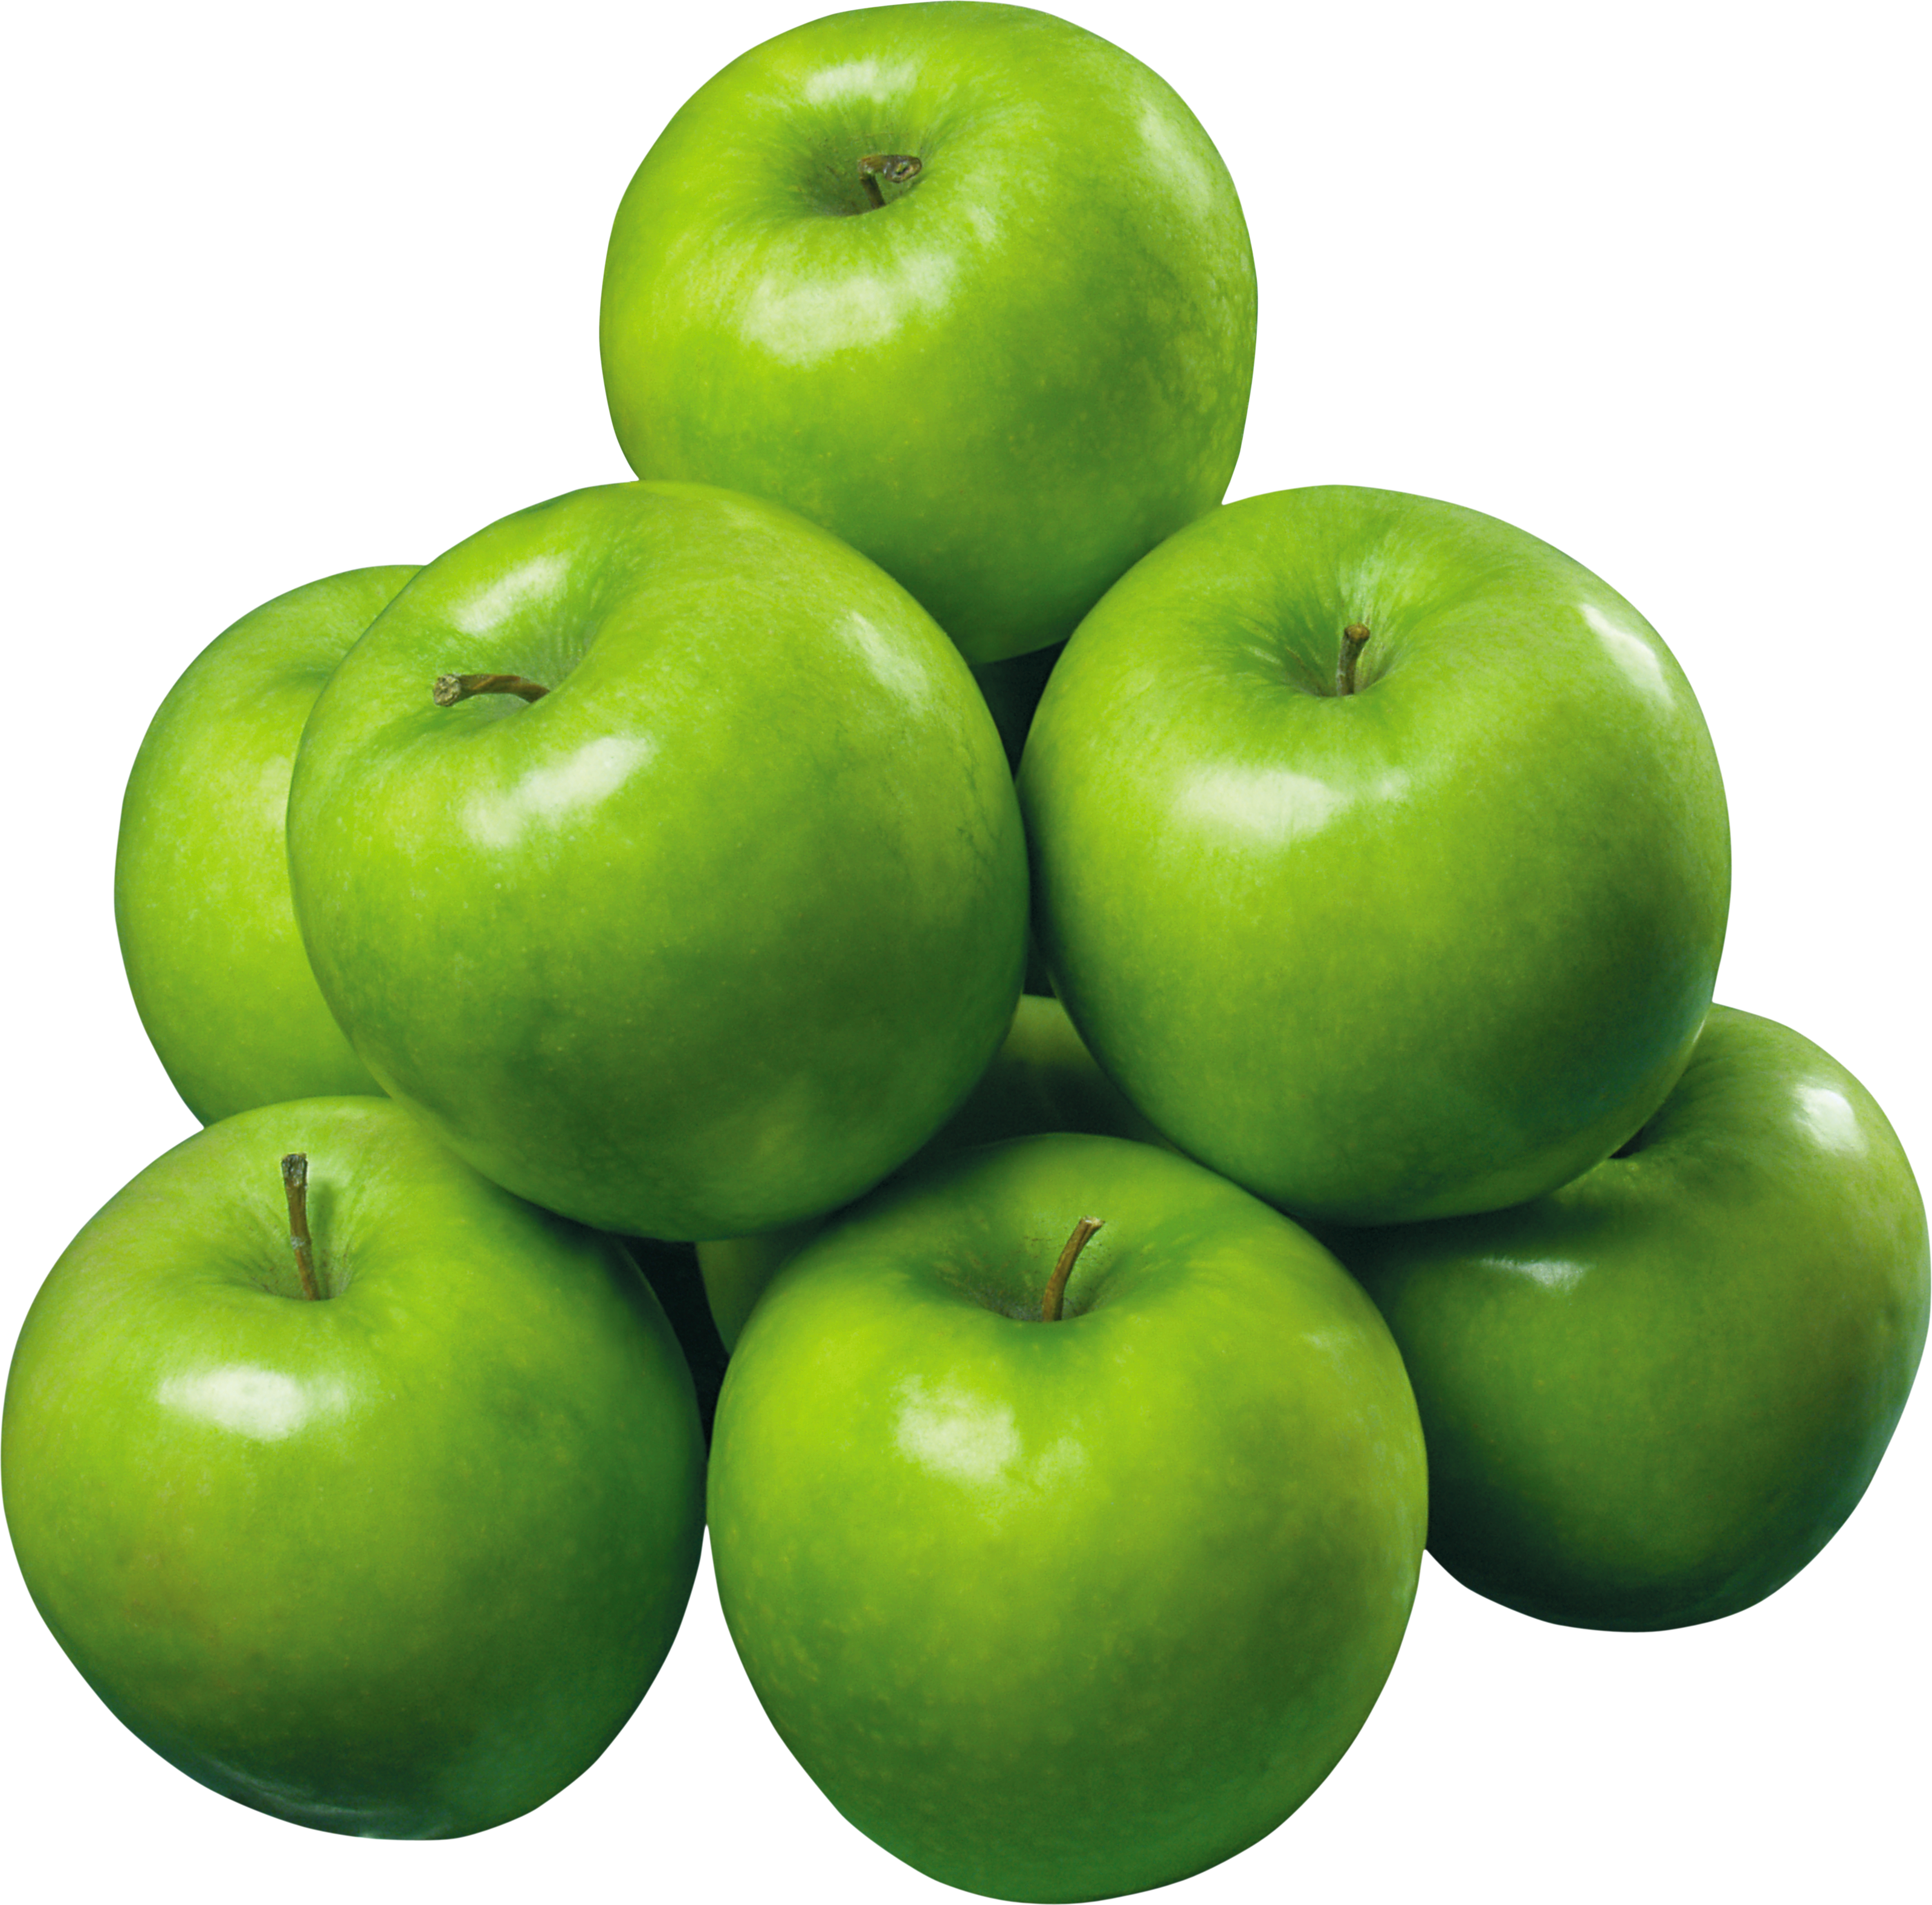 Green apples png. Image purepng free transparent